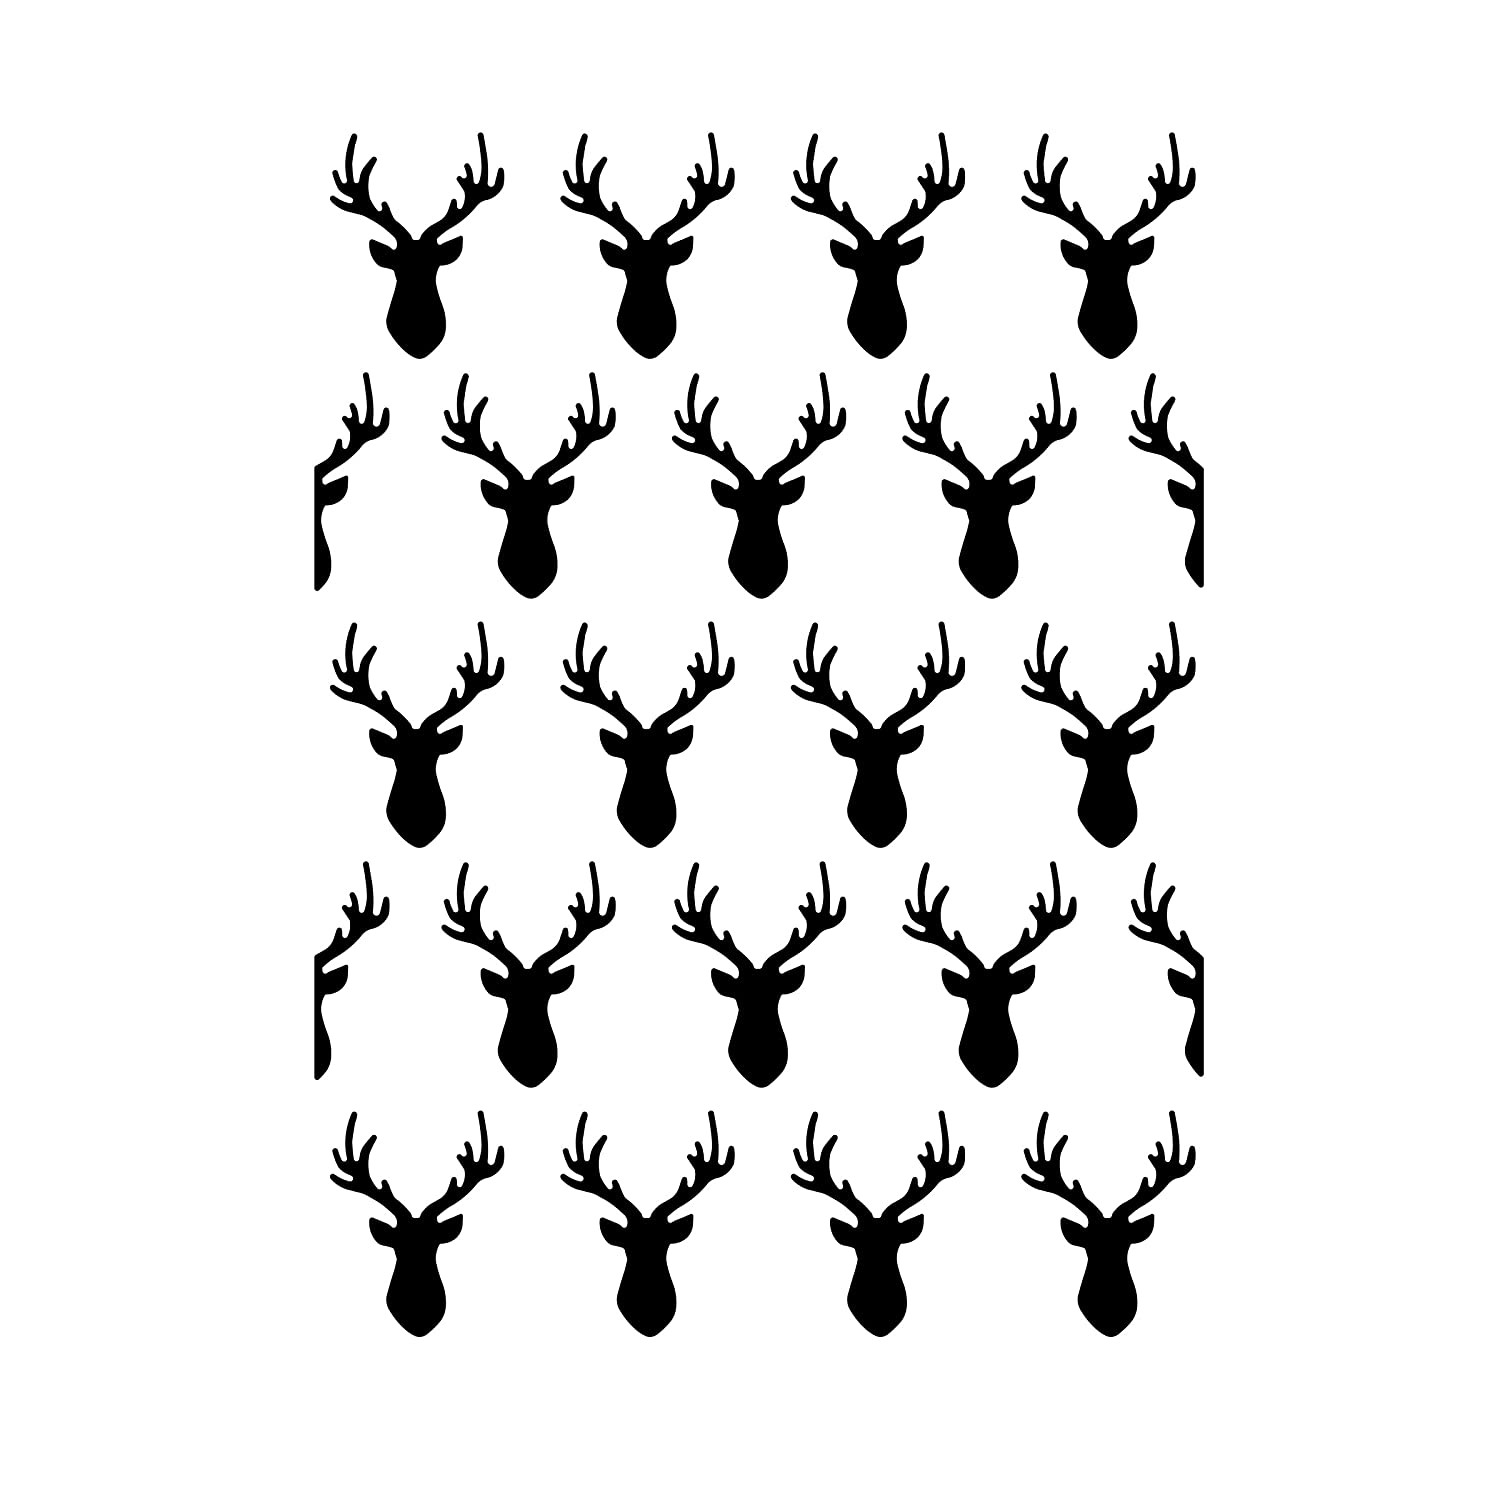 Darice Embossing Folder - Template Deer Heads - 4.25 x 5.75 Inches, 10.8 x 14.6 x 0.11 cm 30032535